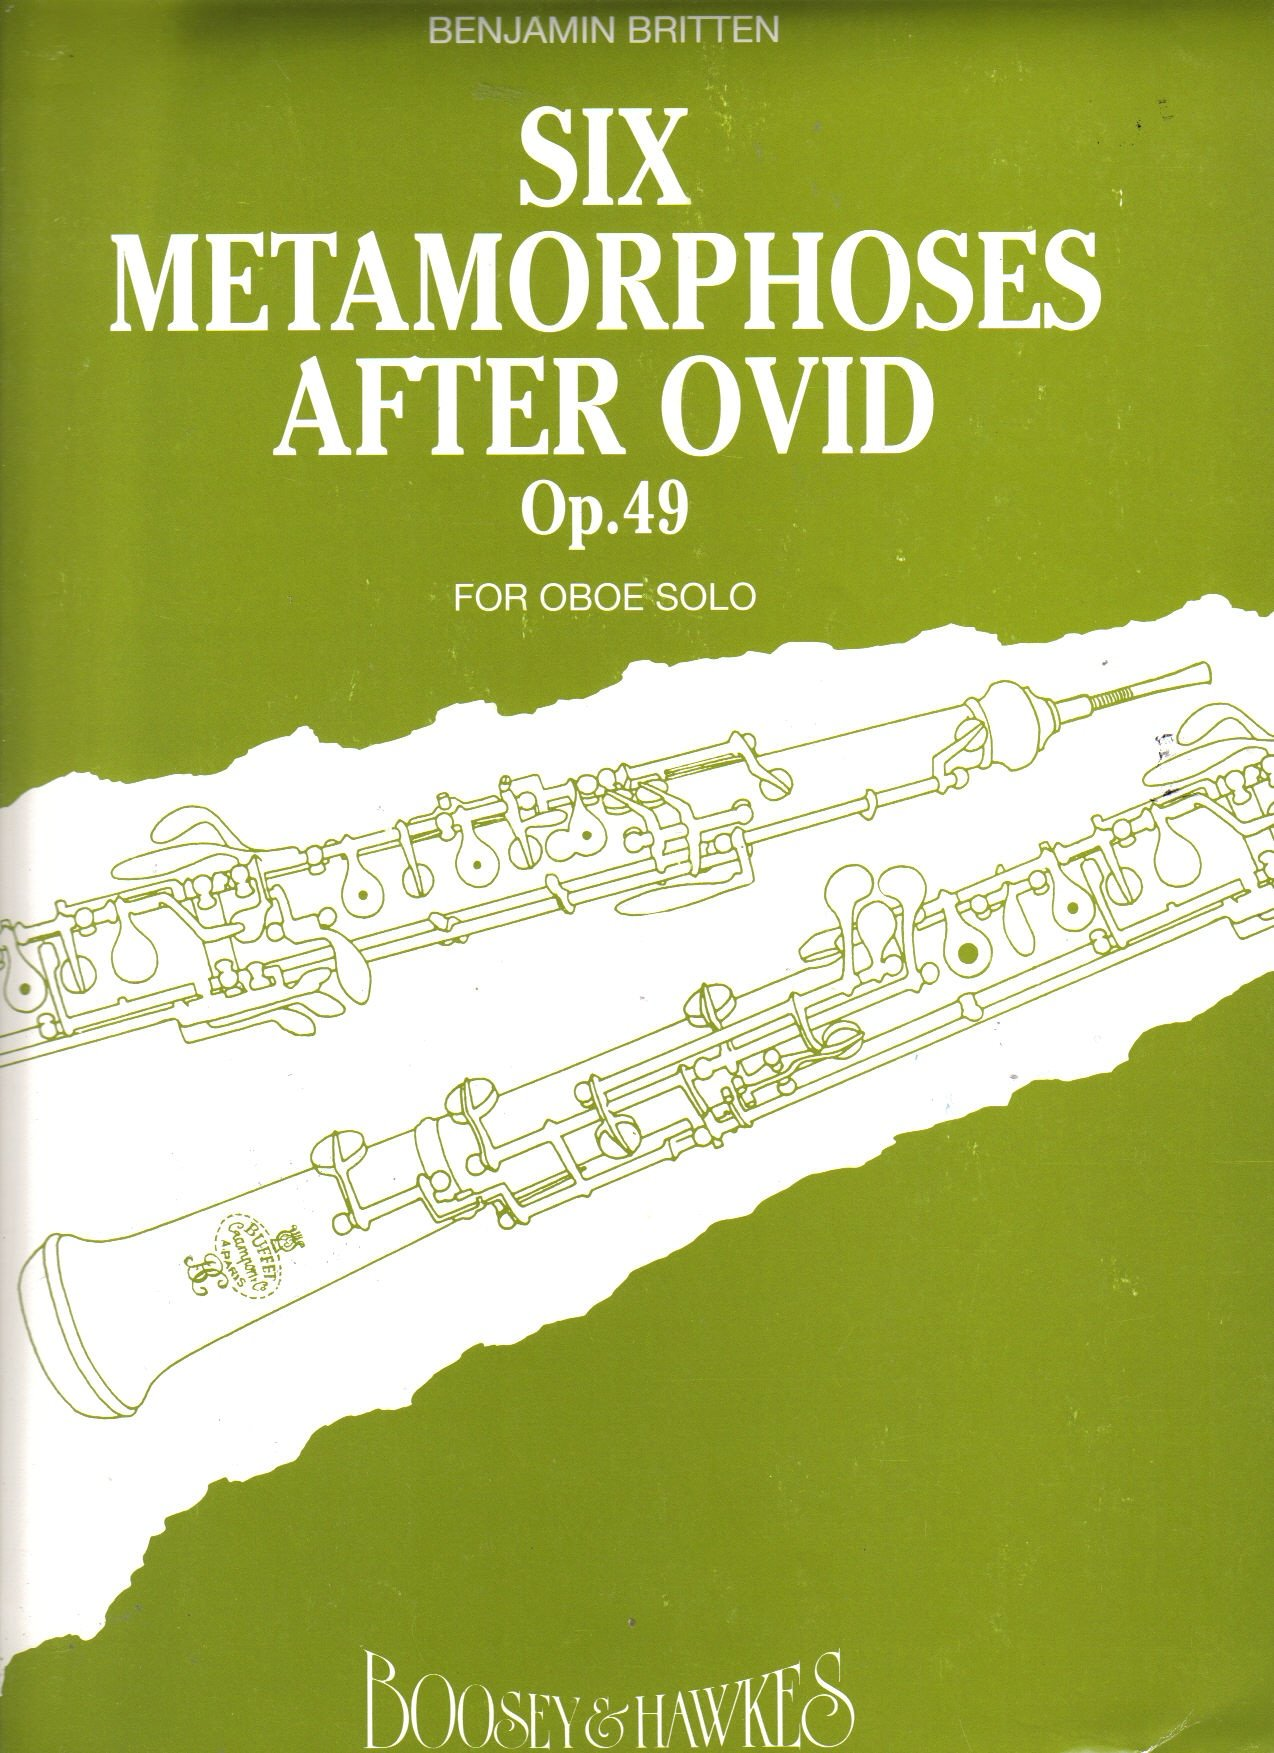 Six Metamorphoses after Ovid. Op. 49. For oboe solo, etc